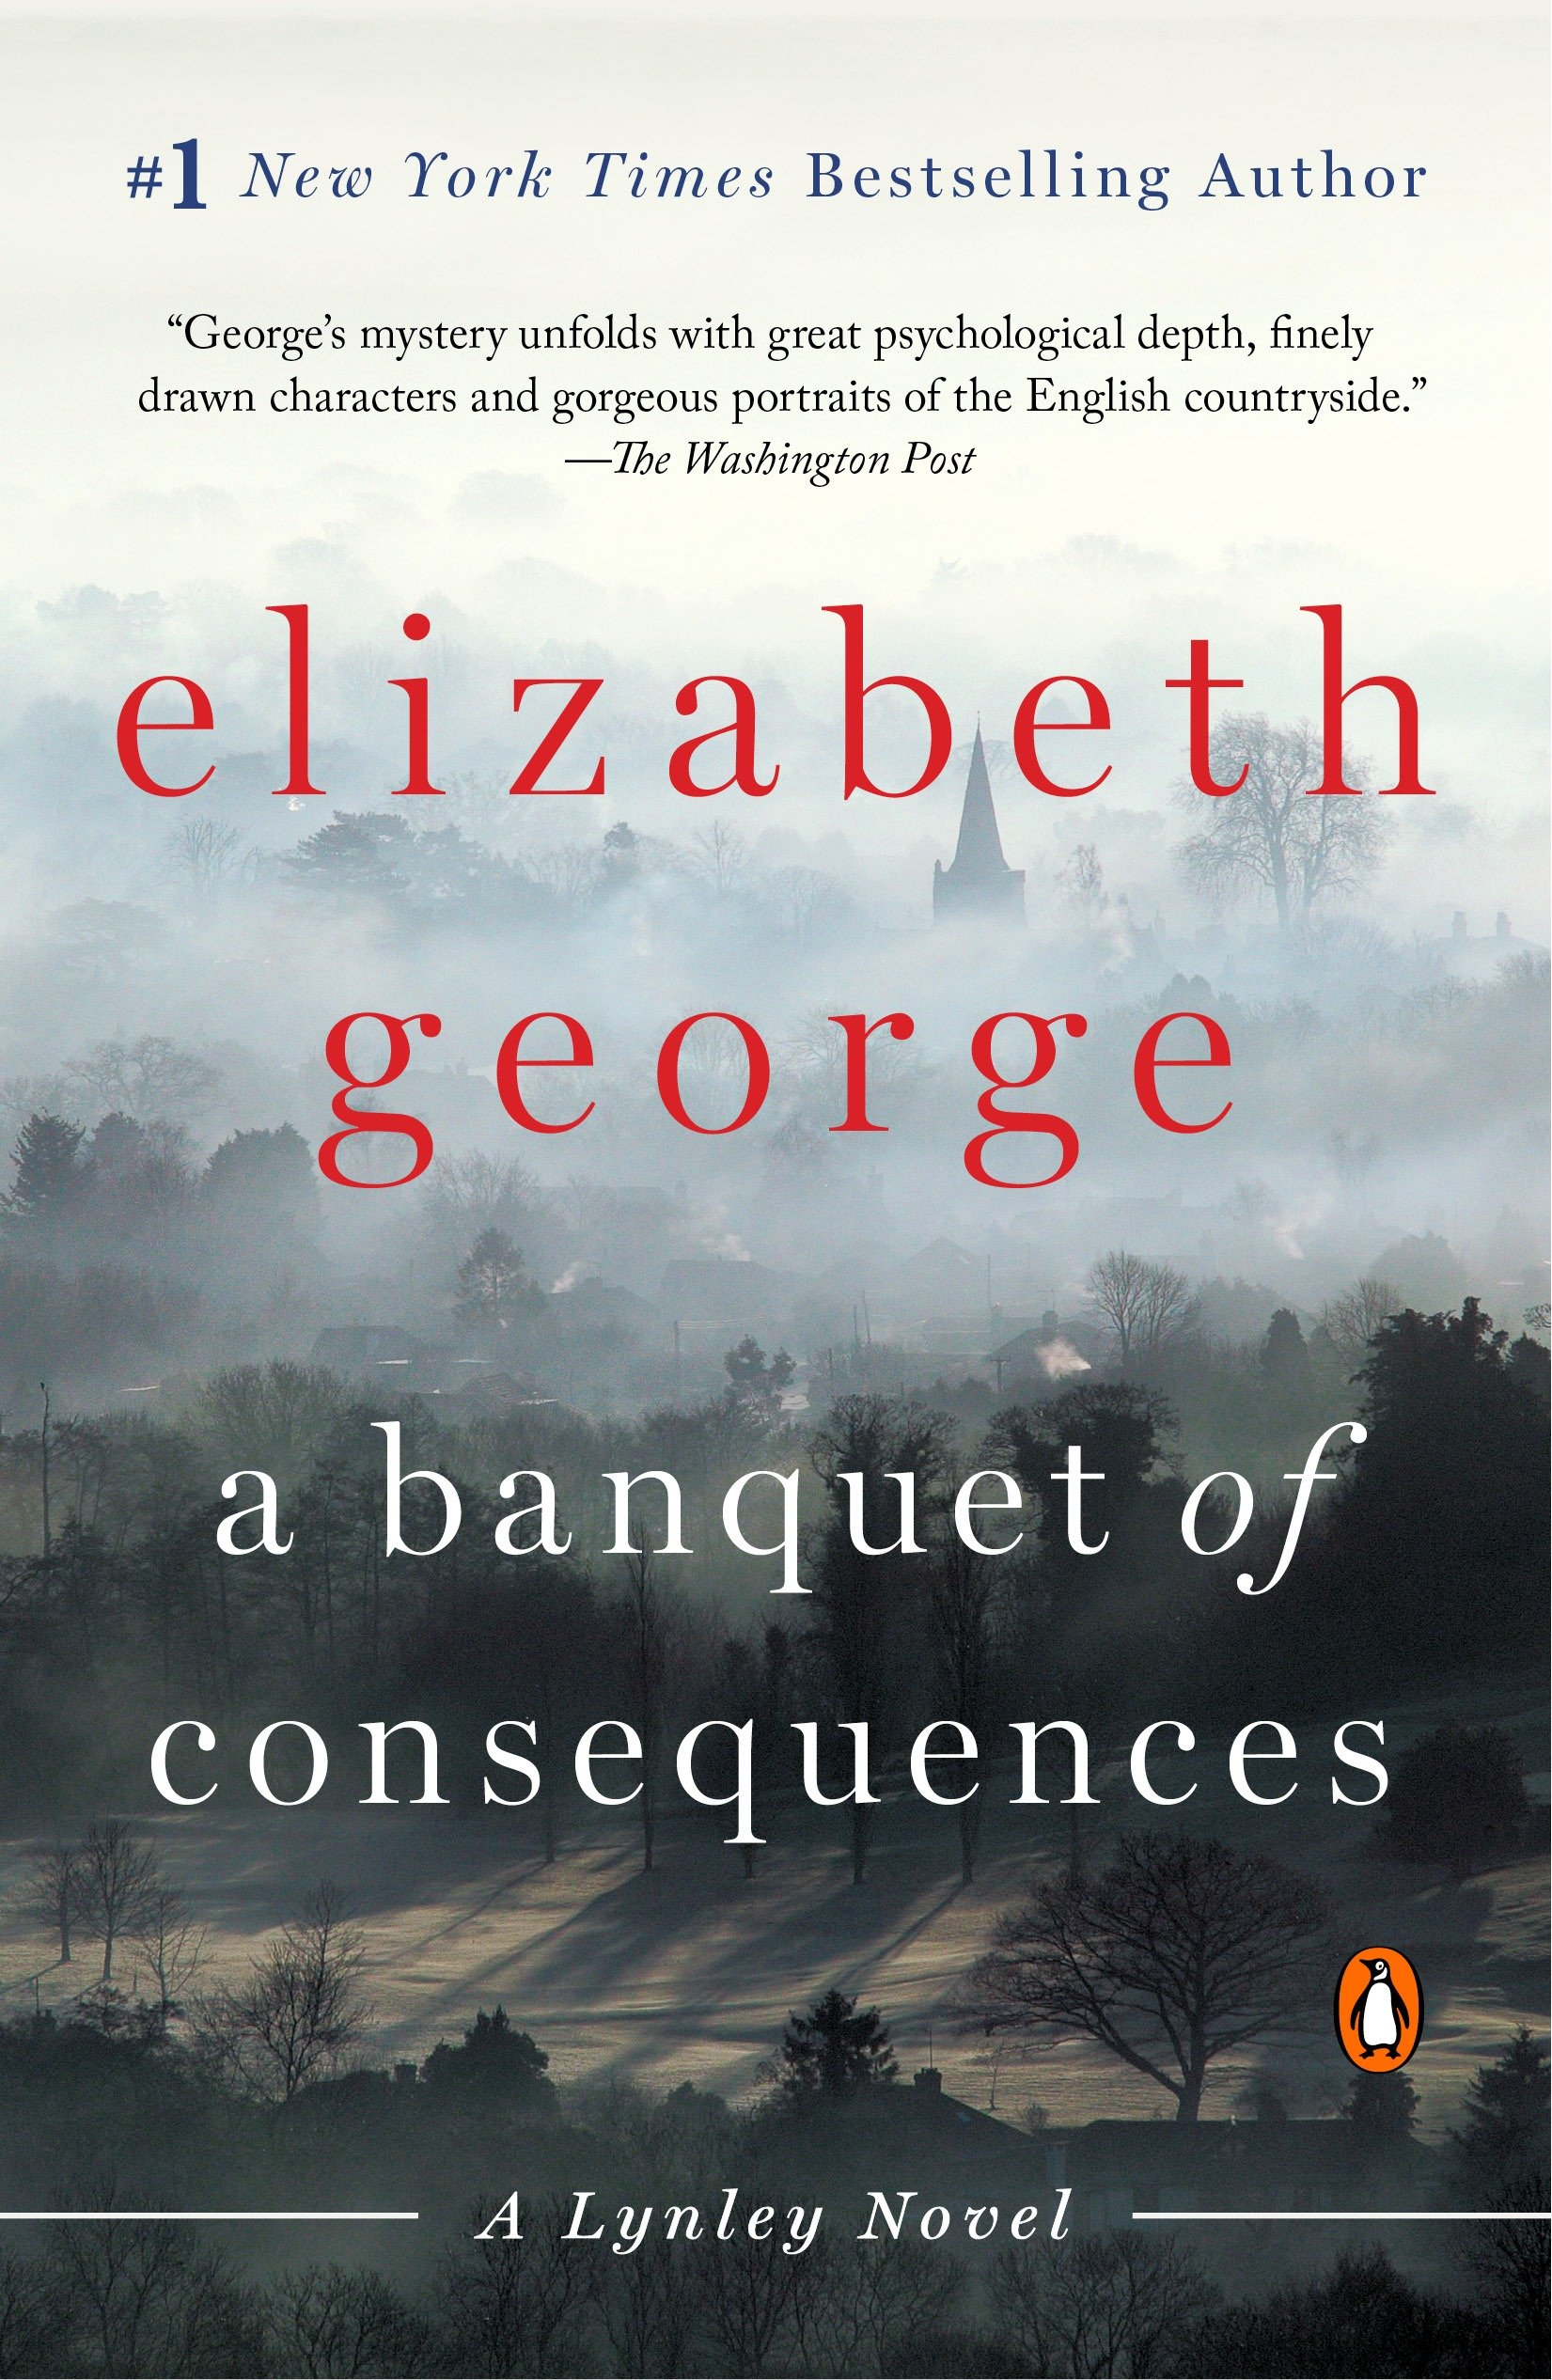 A Banquet of Consequences A Lynley Novel